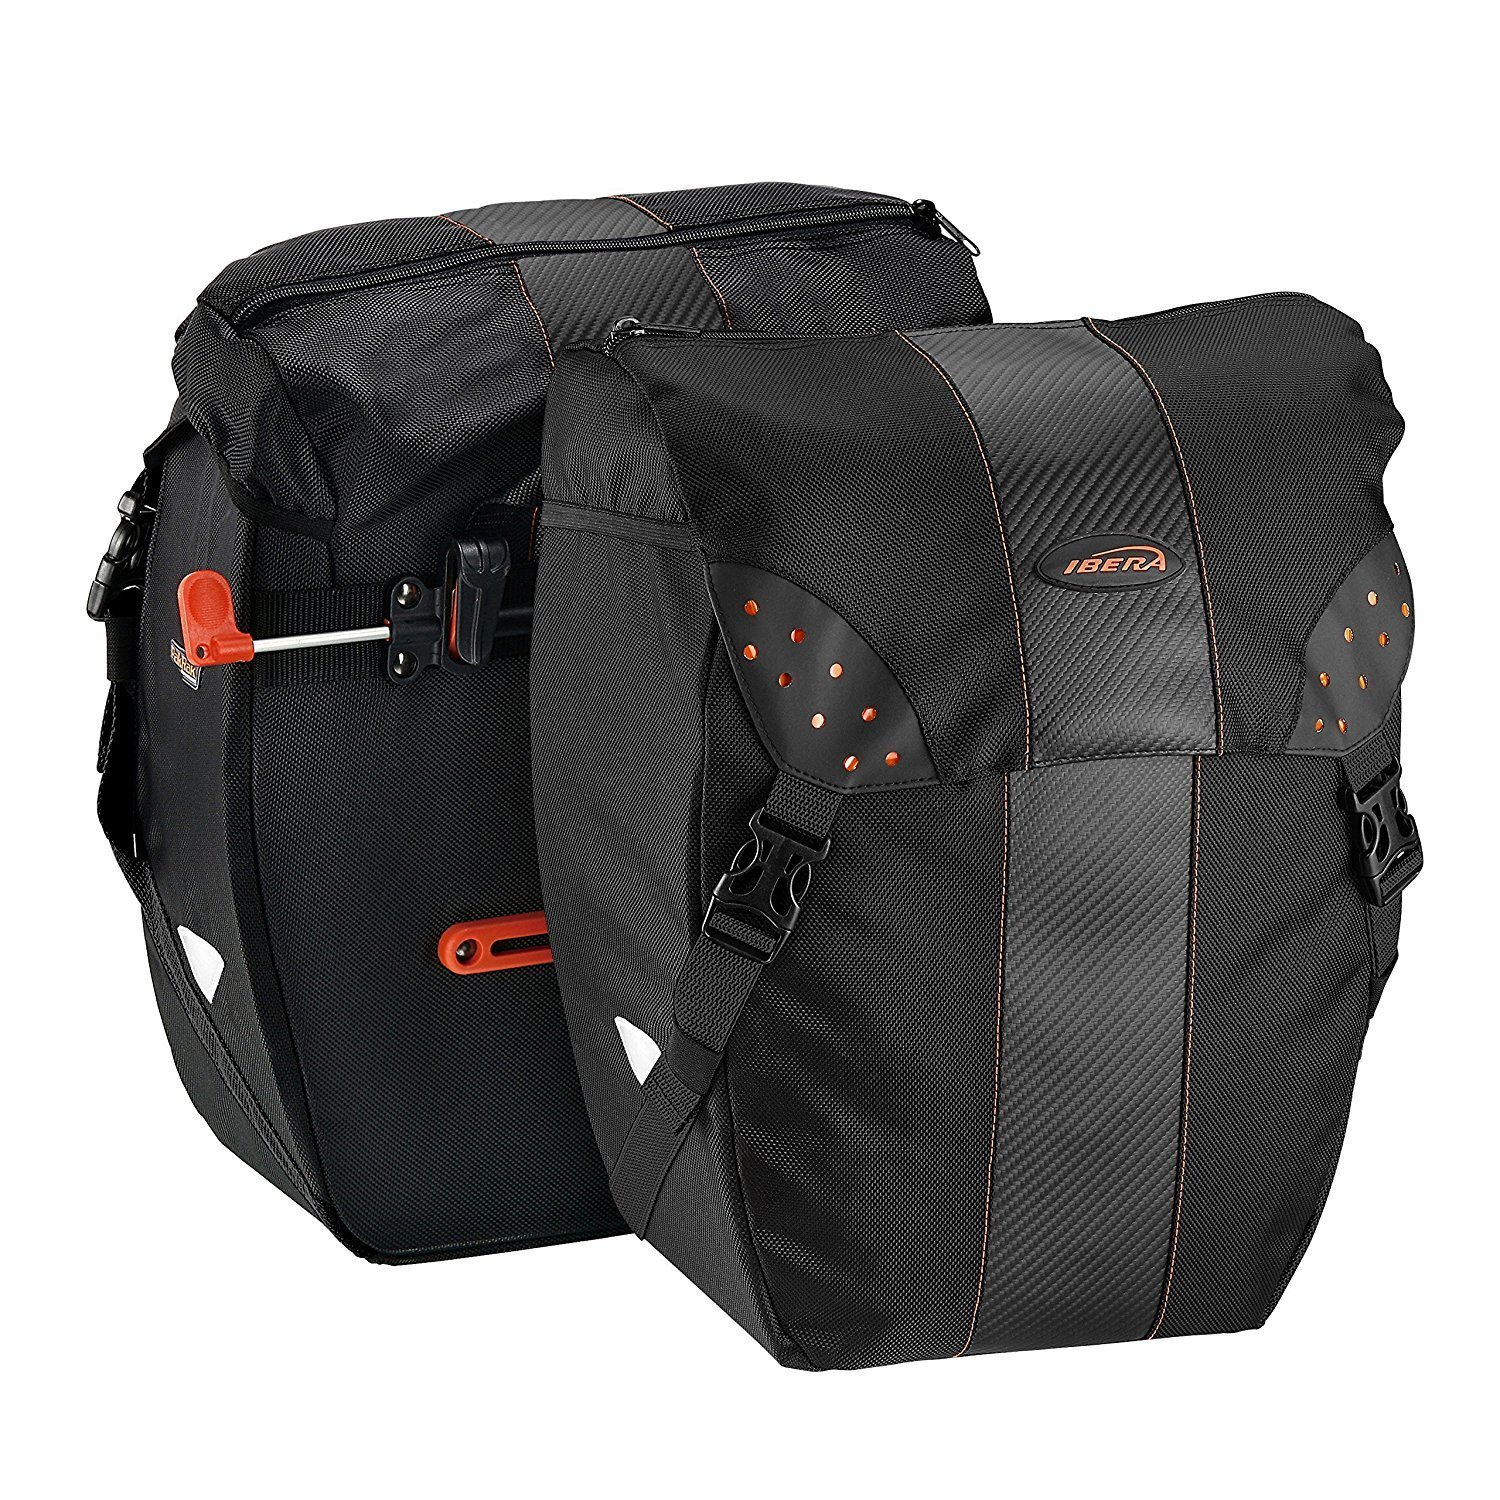 Ibera PakRak Clip-On Bike Panniers